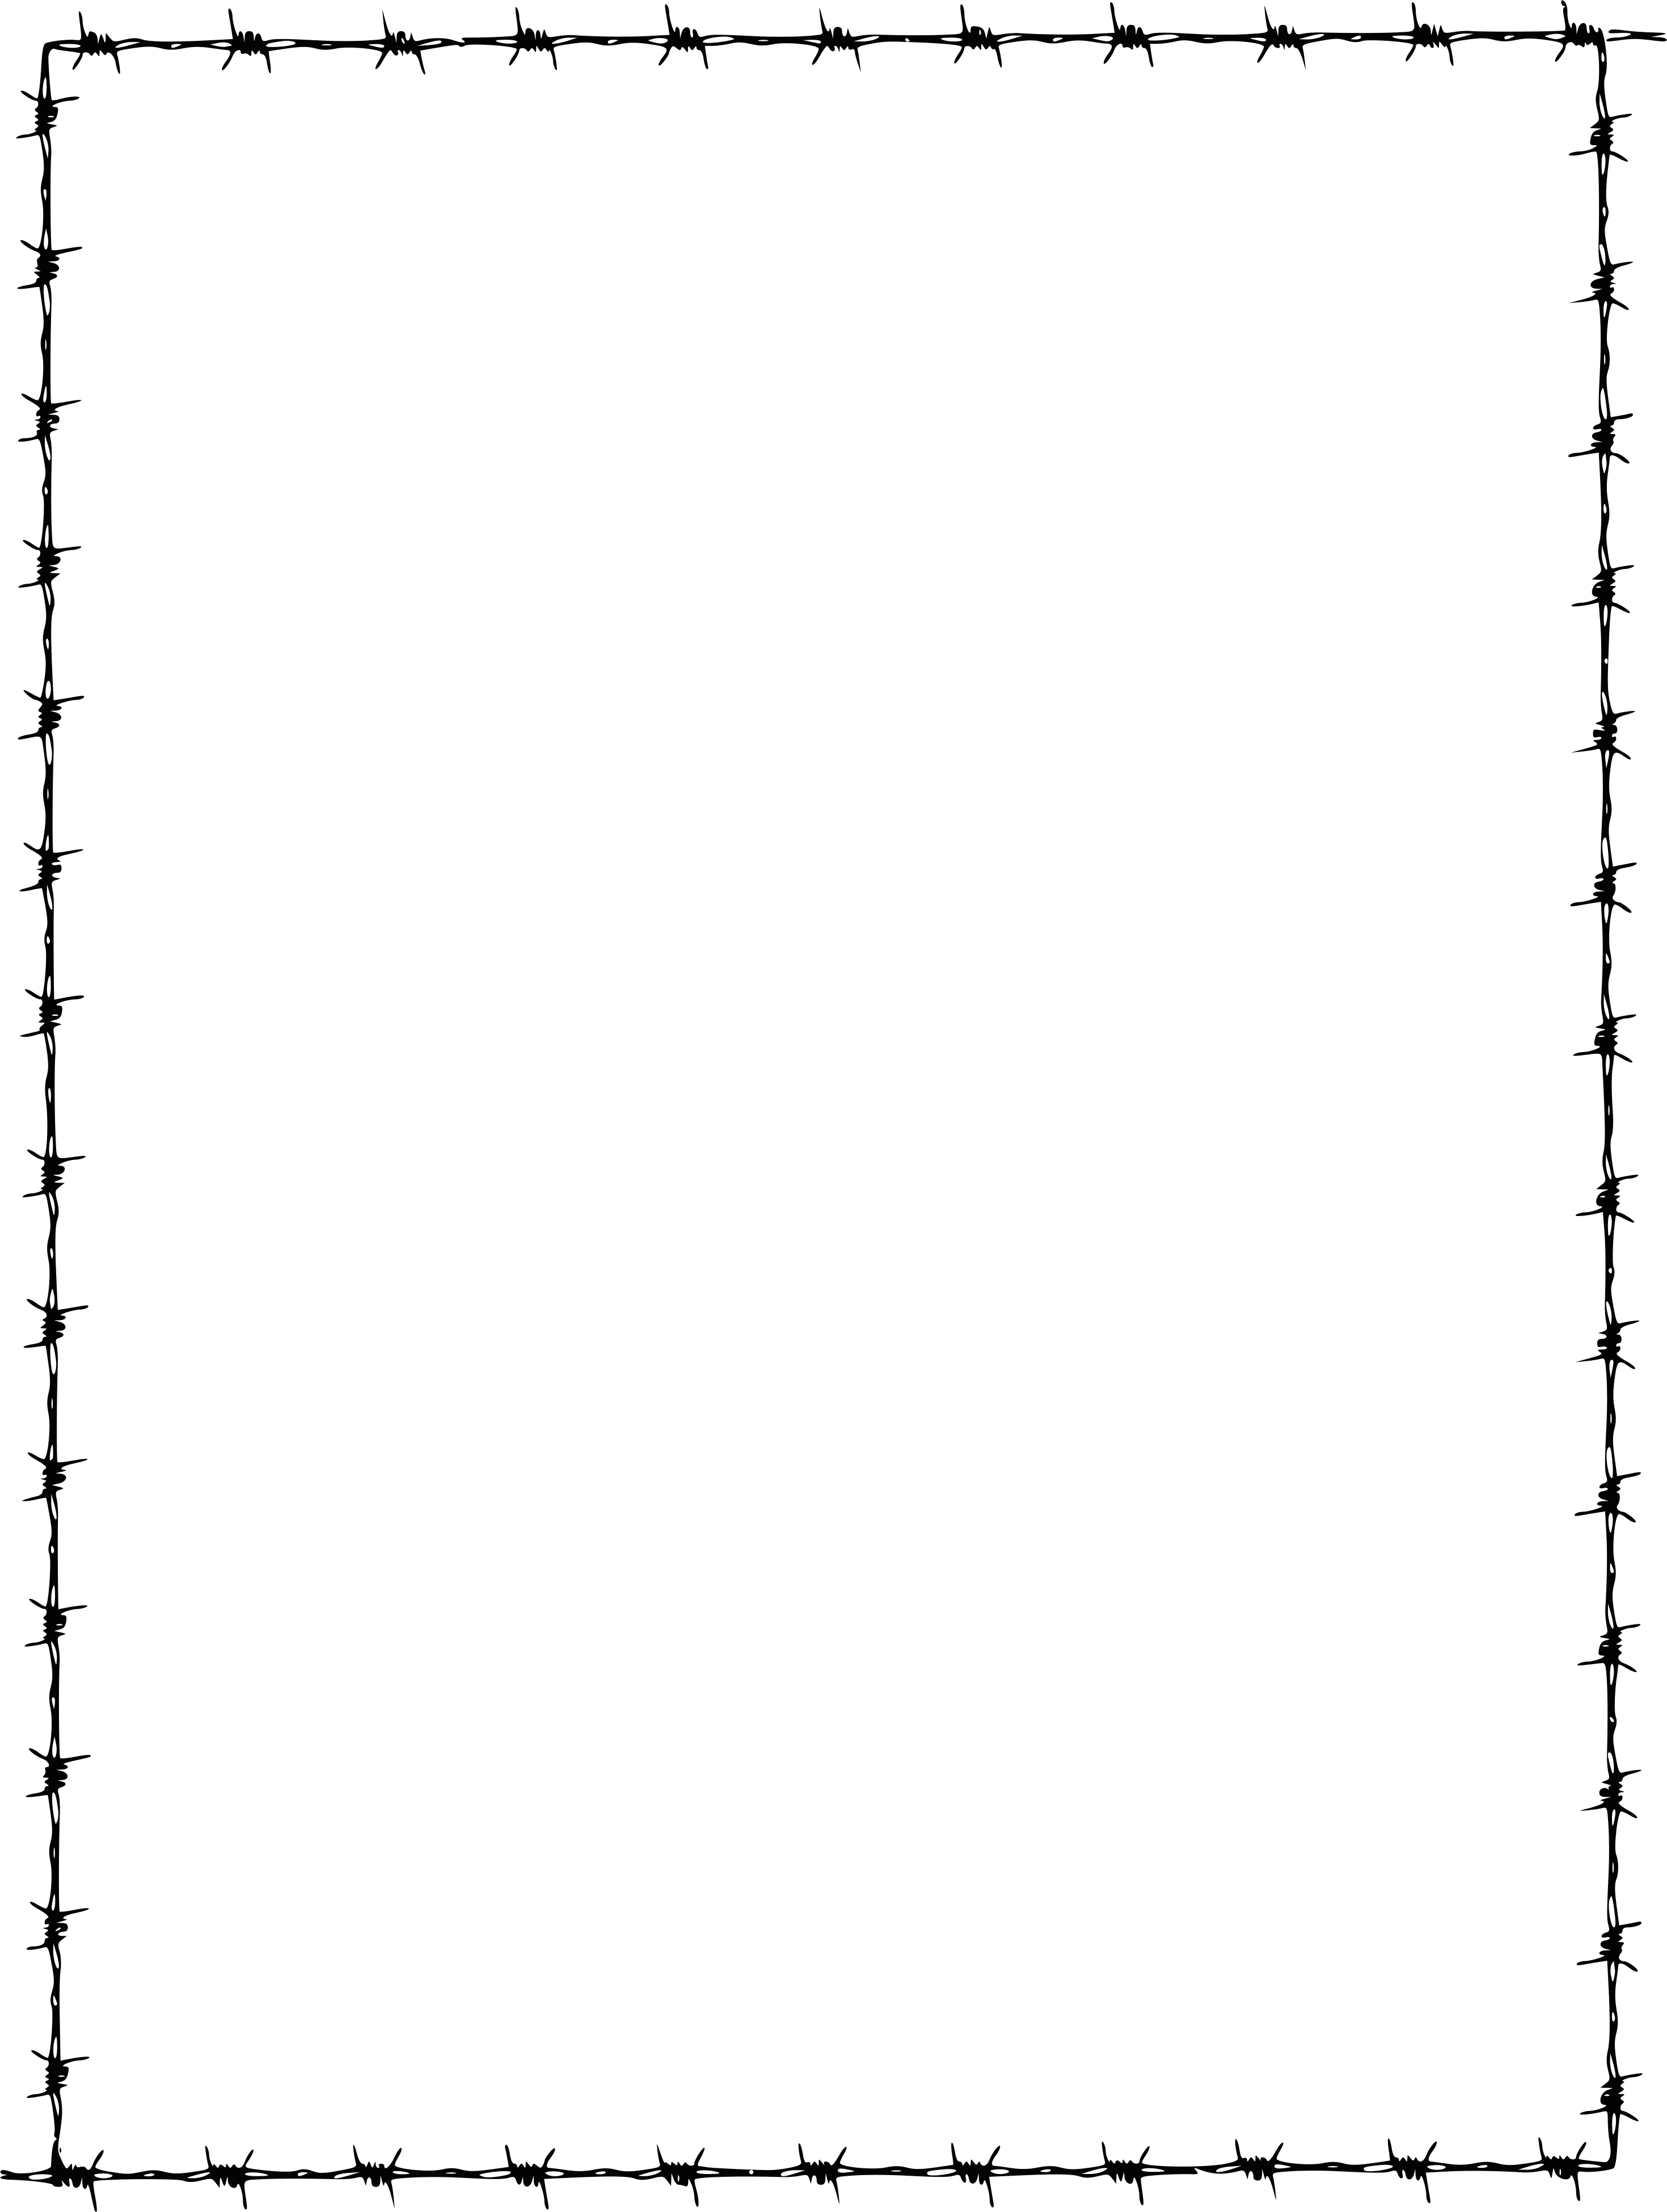 Barb Wire Frame Border